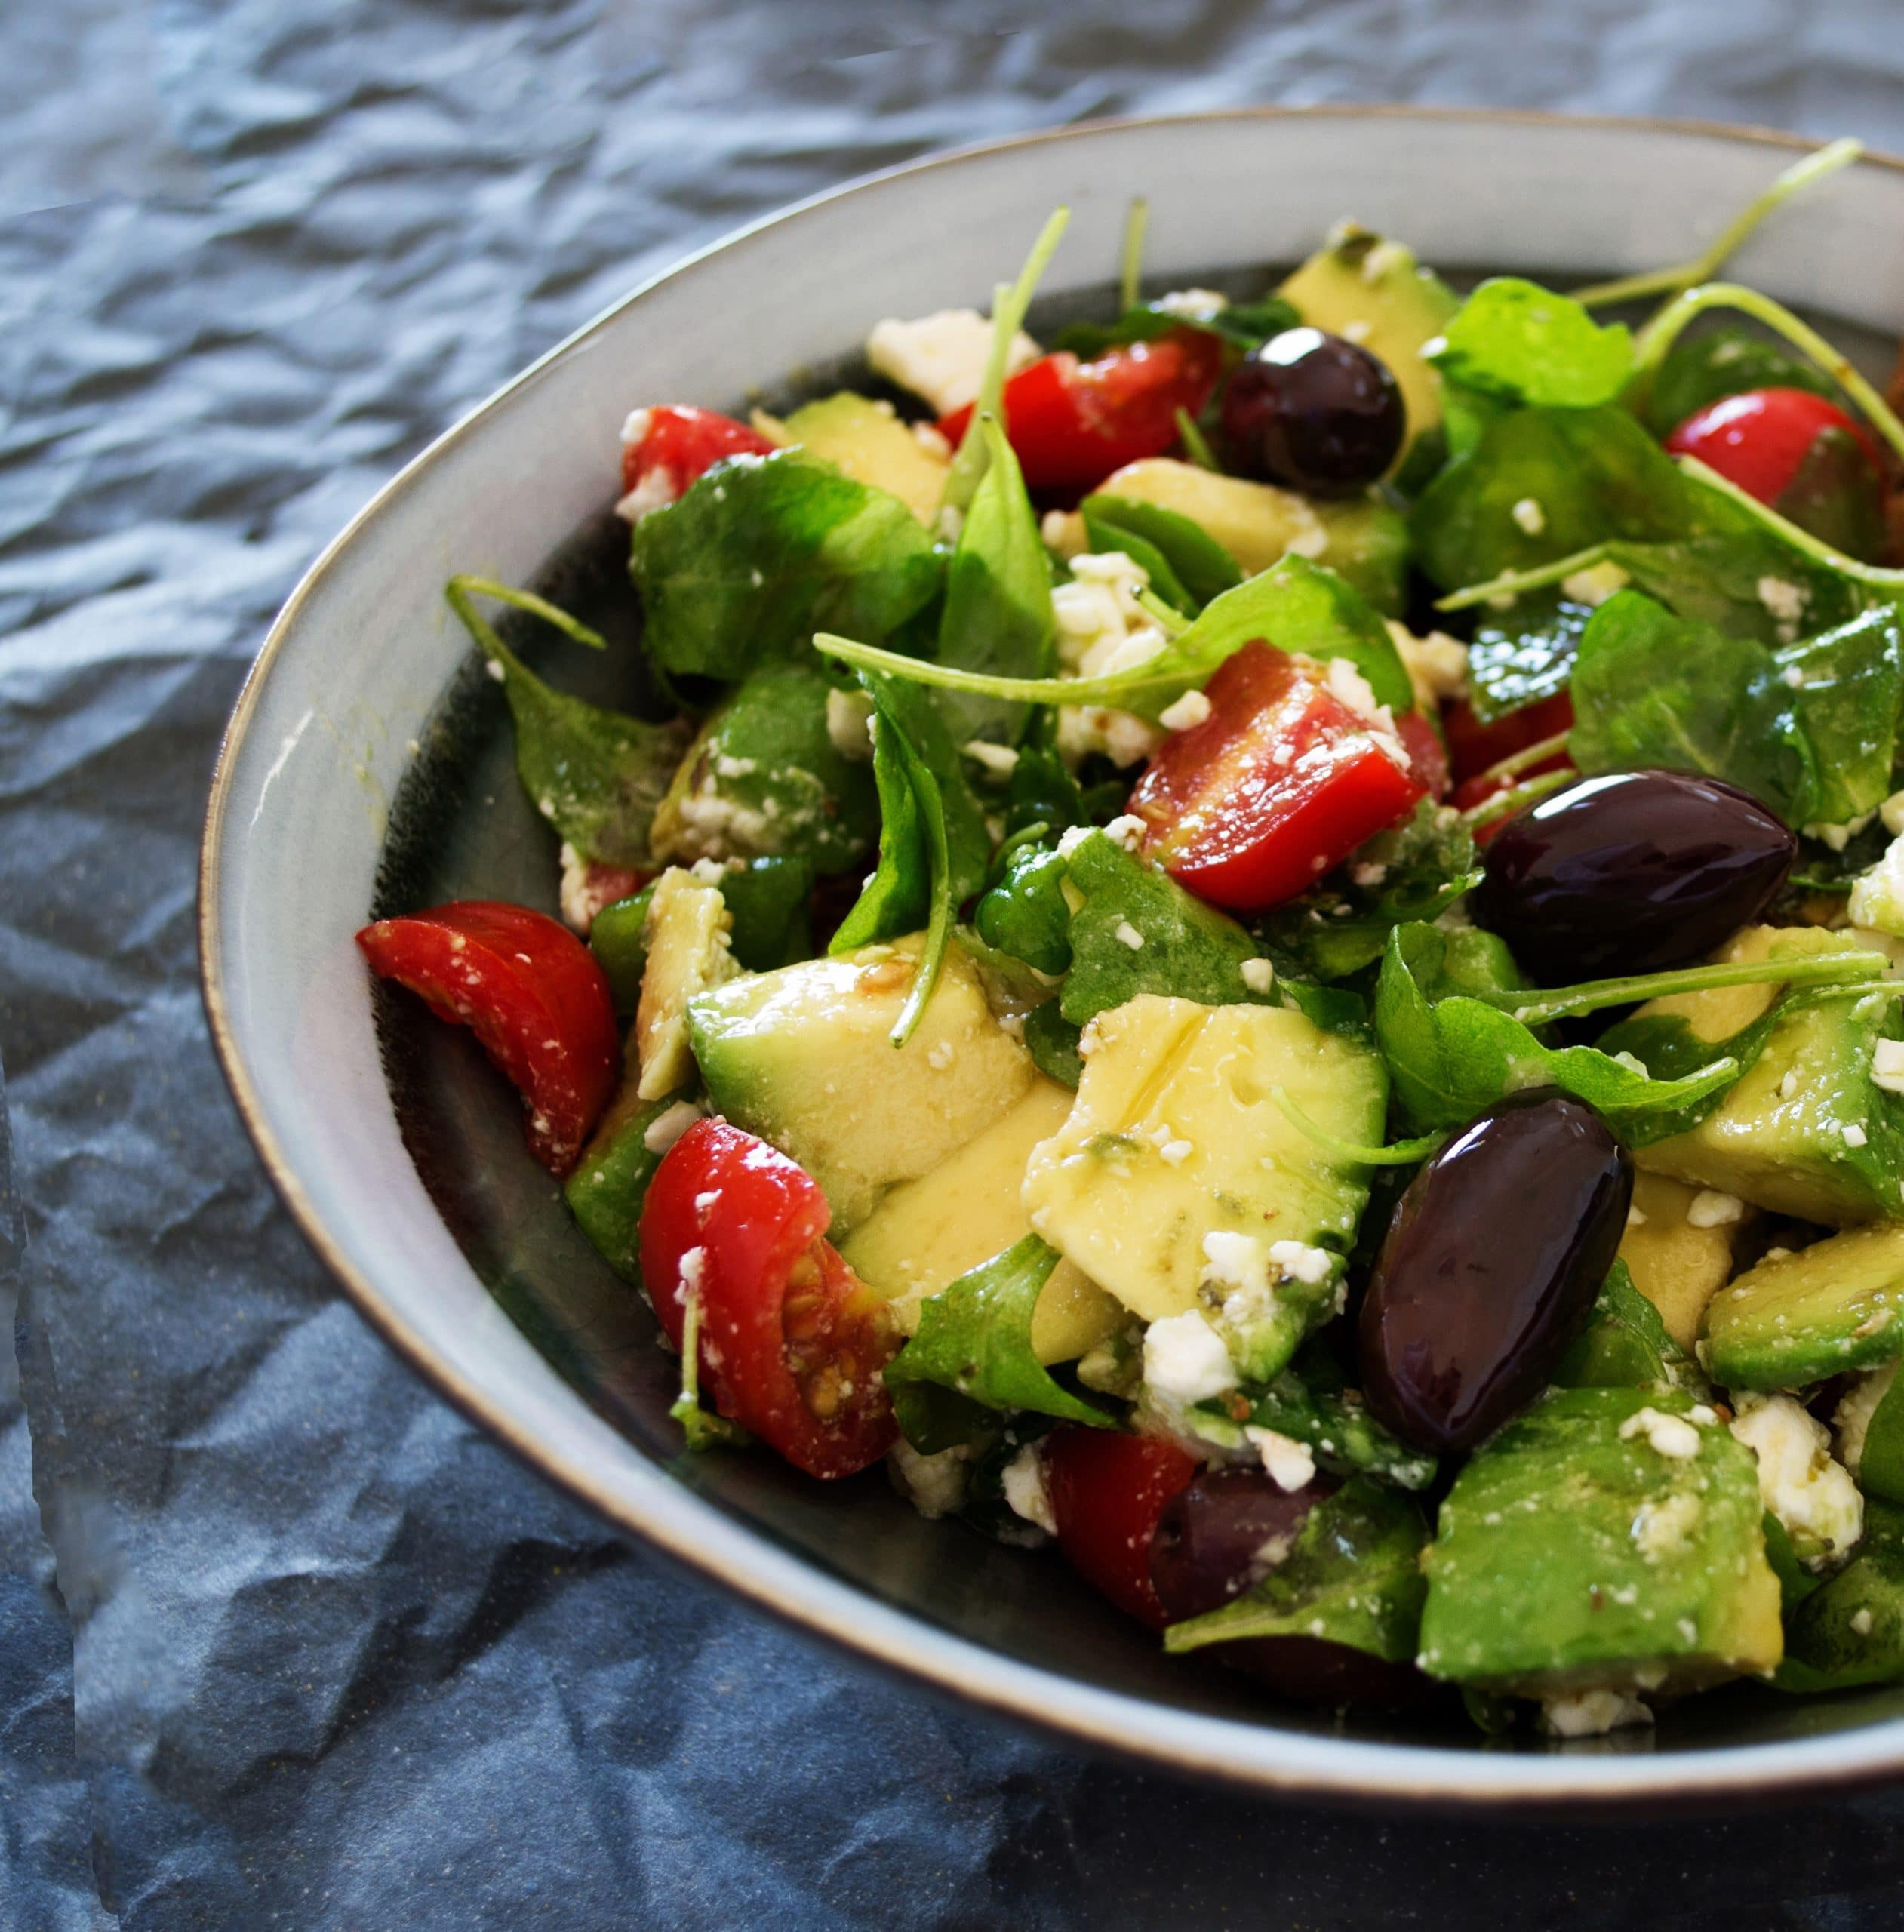 Nüsslisalat Mit Avocado Fatburning Beast Change For Good